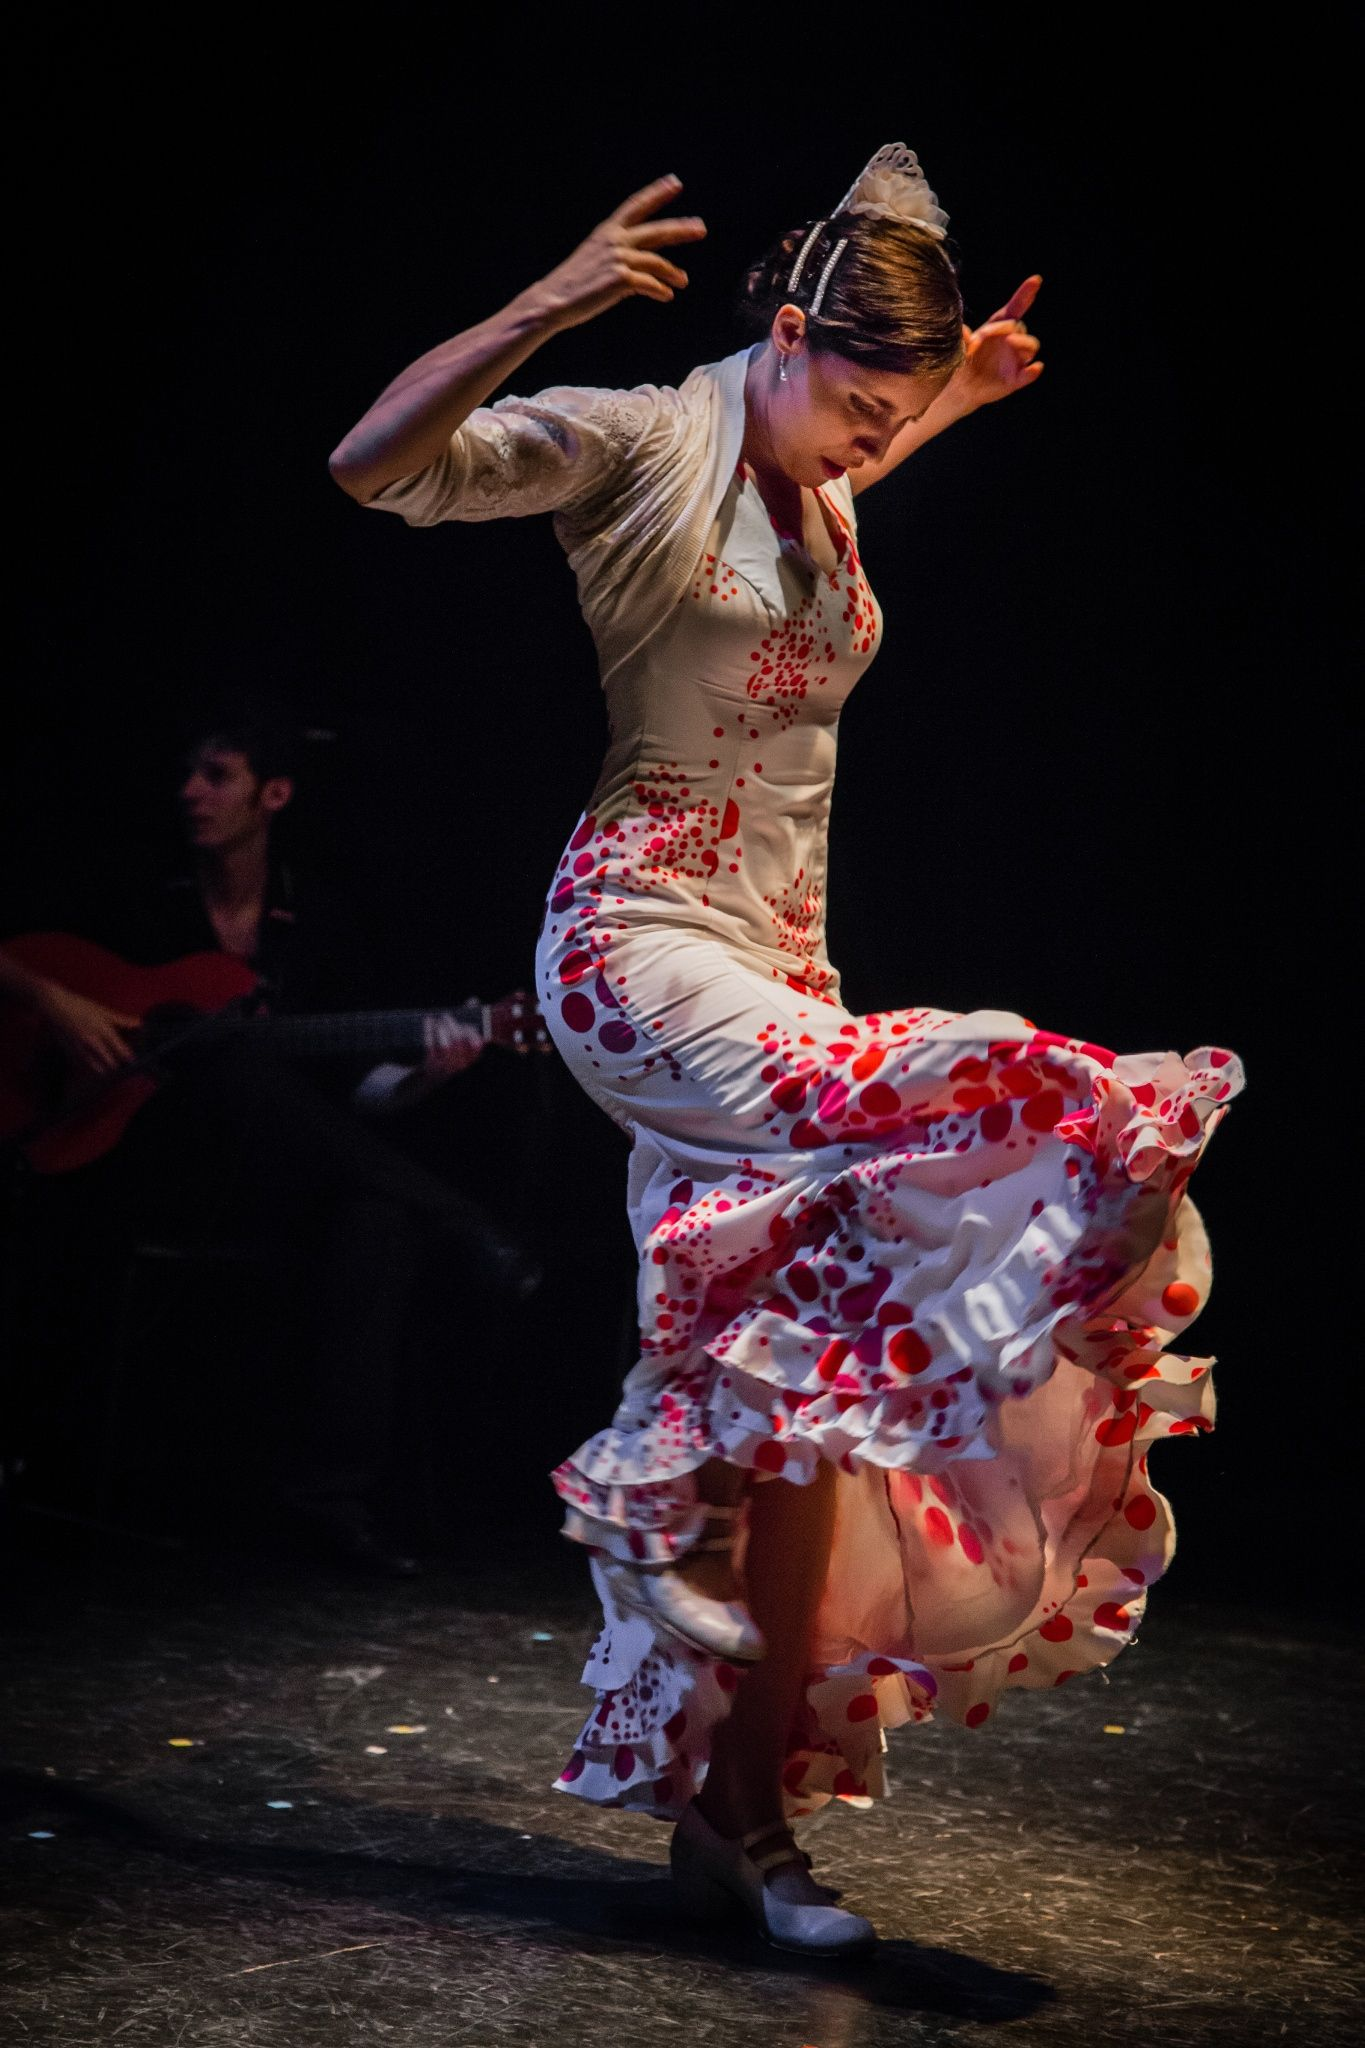 flamenco performance by elodie vélard | traditional dance